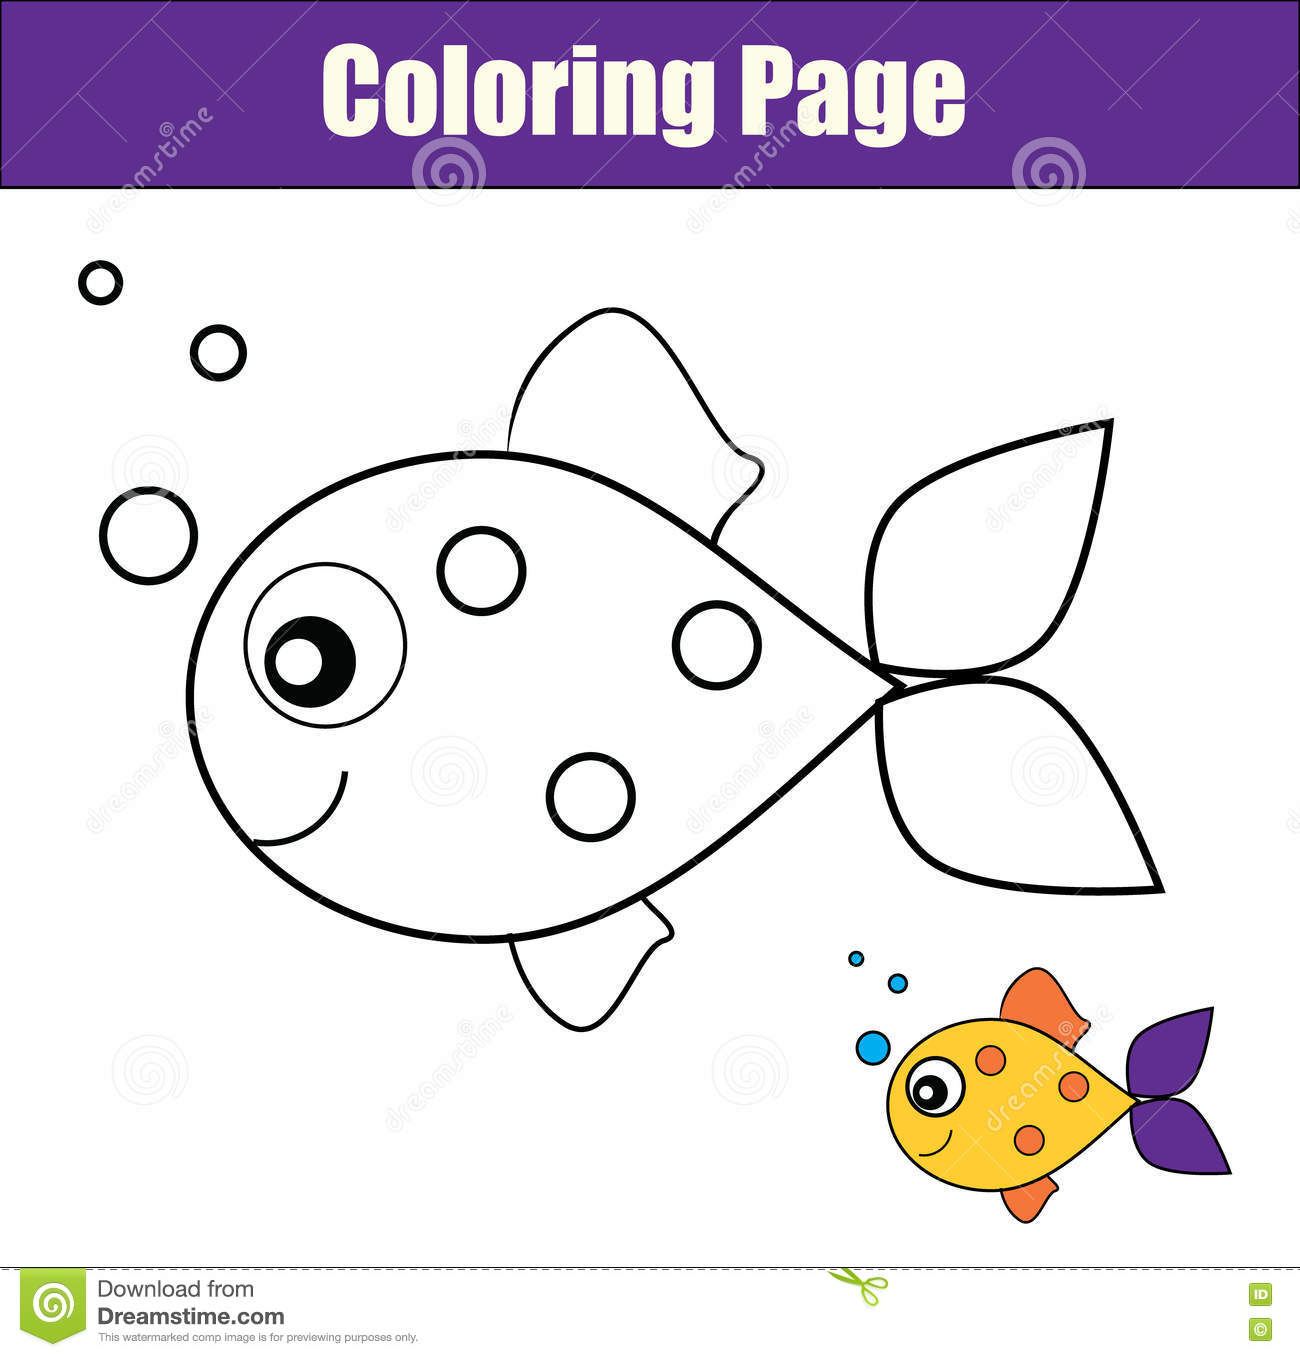 Coloring Page With Fish Educational Game Printable